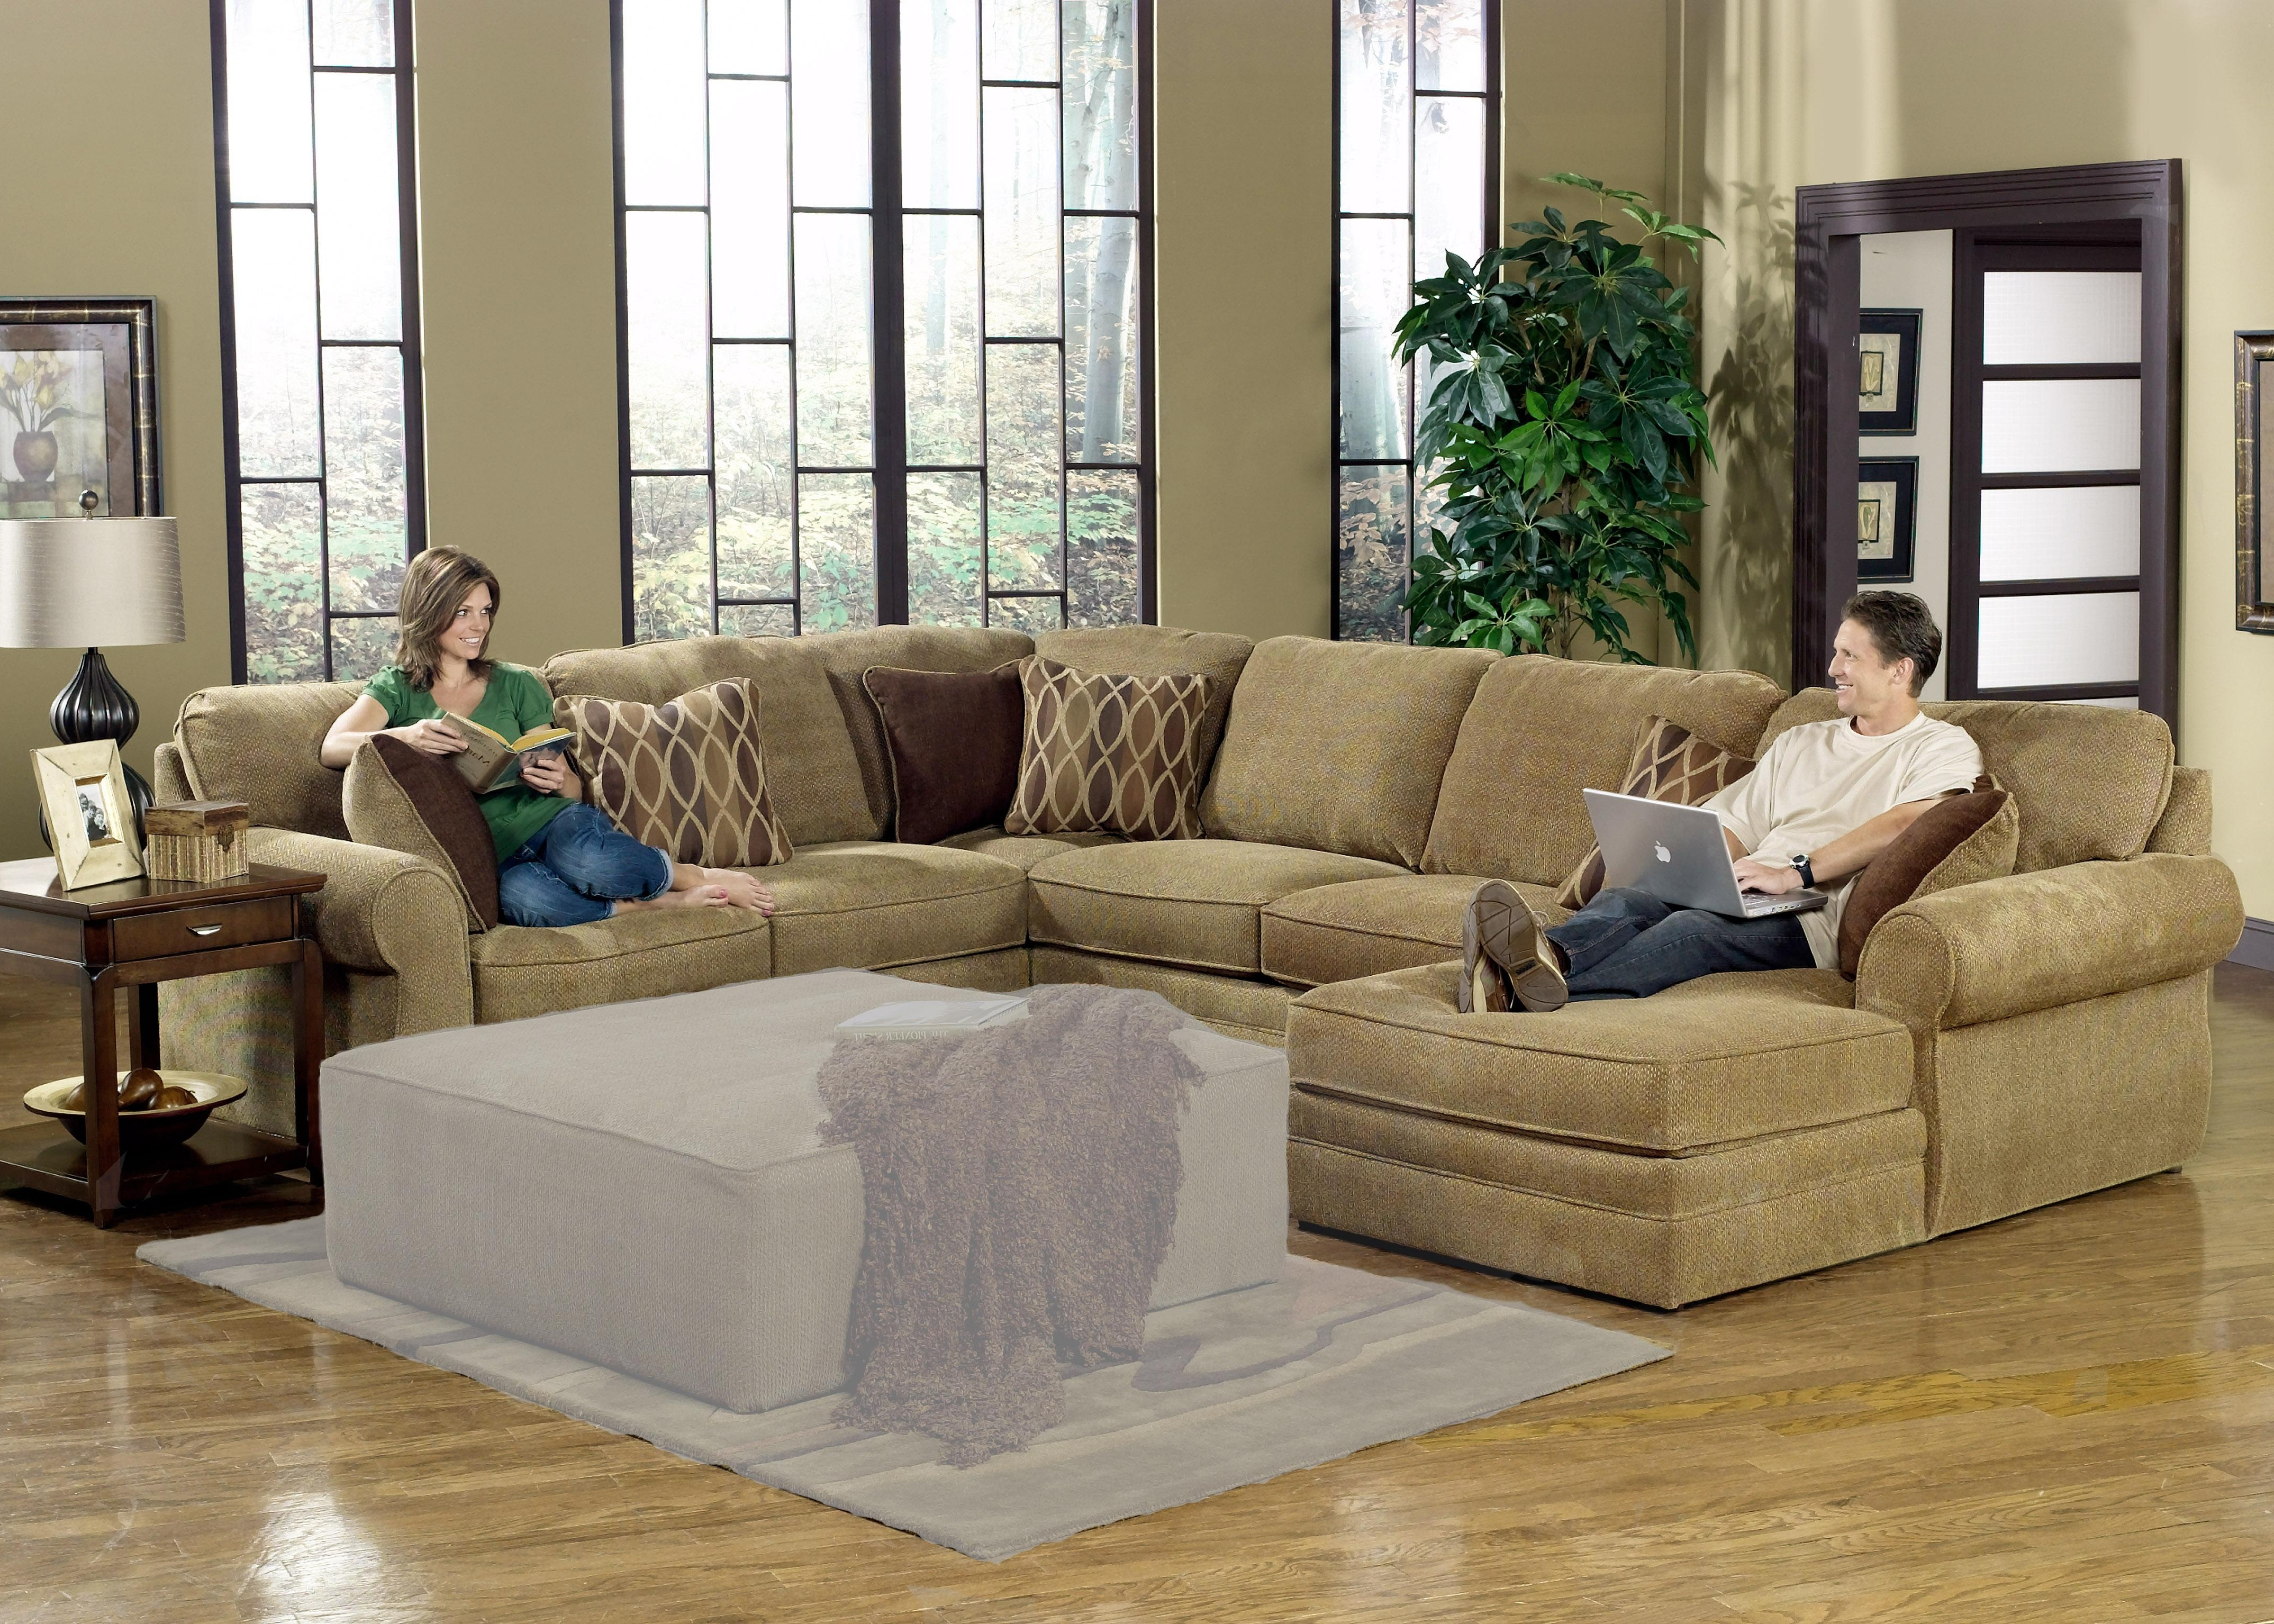 Modern U Shaped Sectionals In 2017 Fascinating U Shaped Sectional Sofas 123 Sofa Sectionals Canada (View 7 of 15)